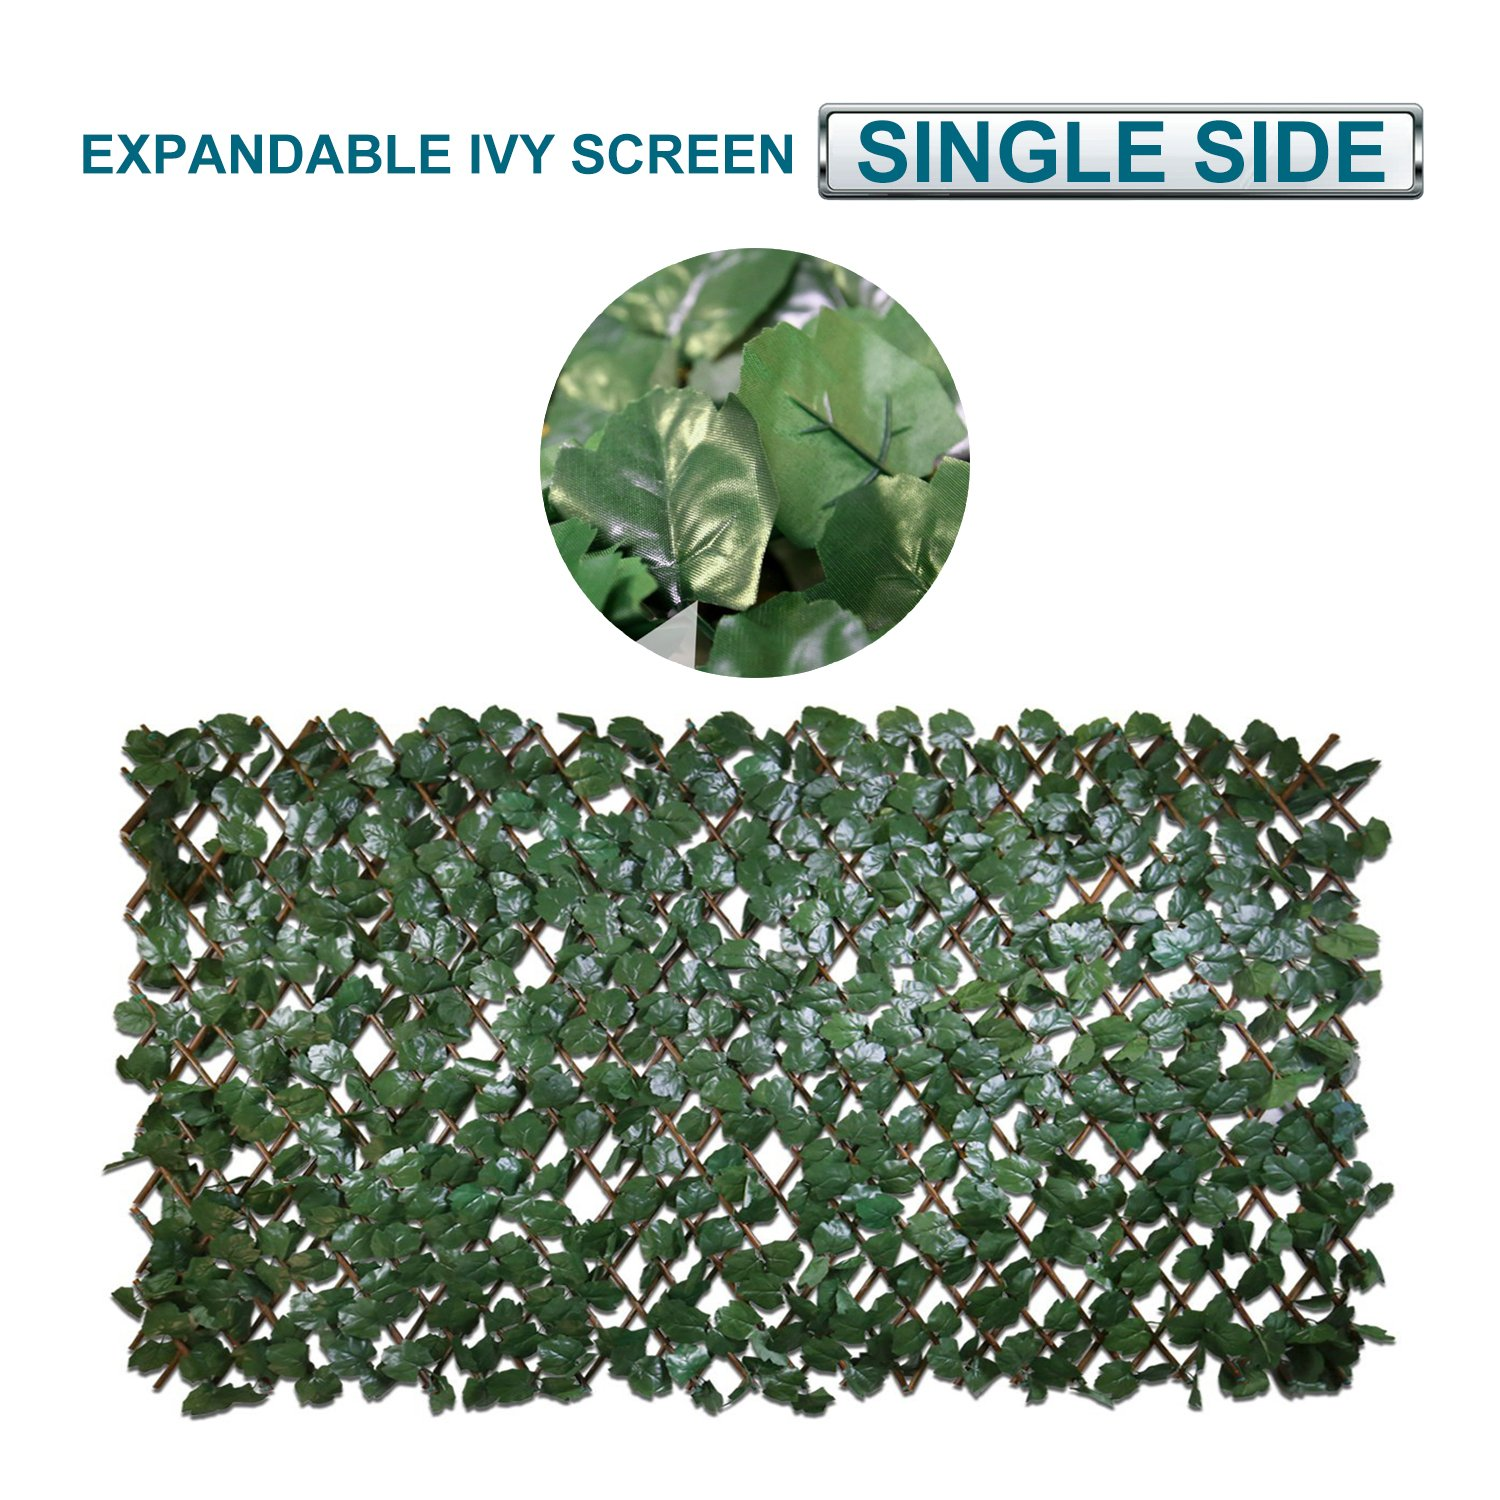 Coarbor Artificial Leaf Ivy Expandable Privacy Fence Screen Stretchable Fencing Perfect For Deck Balcony Patio Porch Trellis Decor- Single Side Leaves